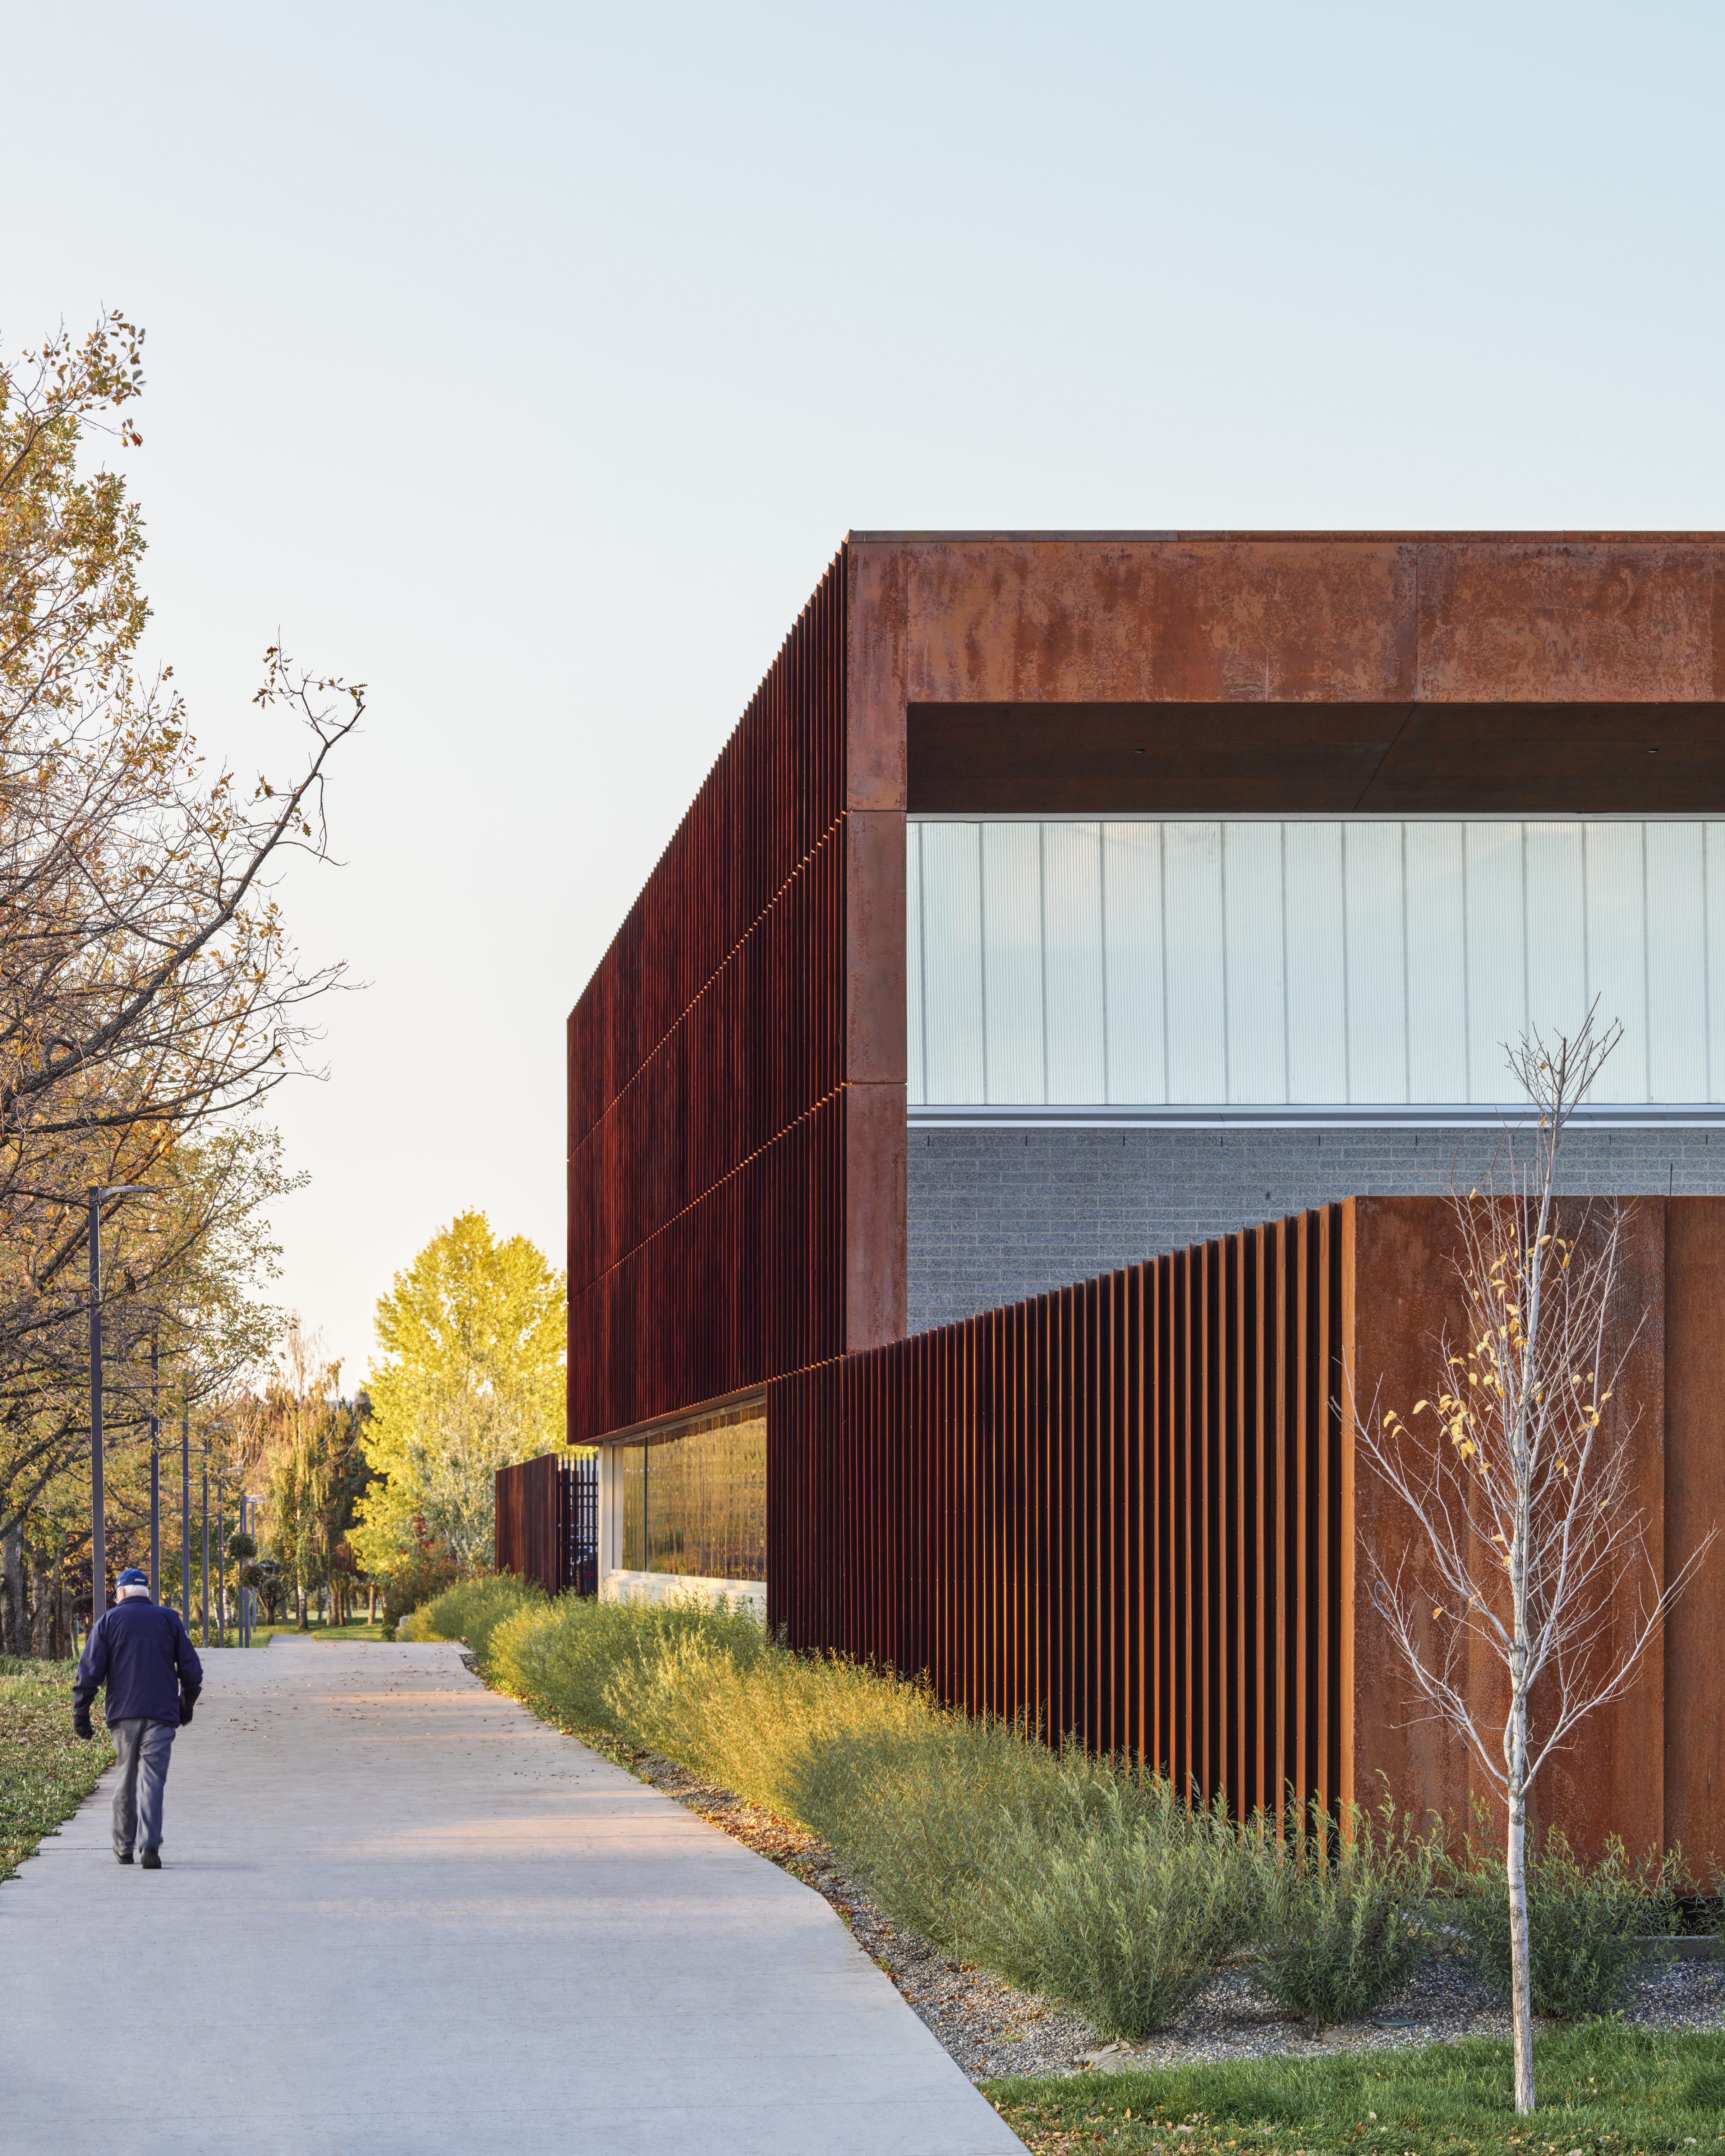 office of mcfarlane biggar architects + designers, Prince George, British Columbia, Canada, College of New Caledonia Heavy Mechanical Trades Training Facility